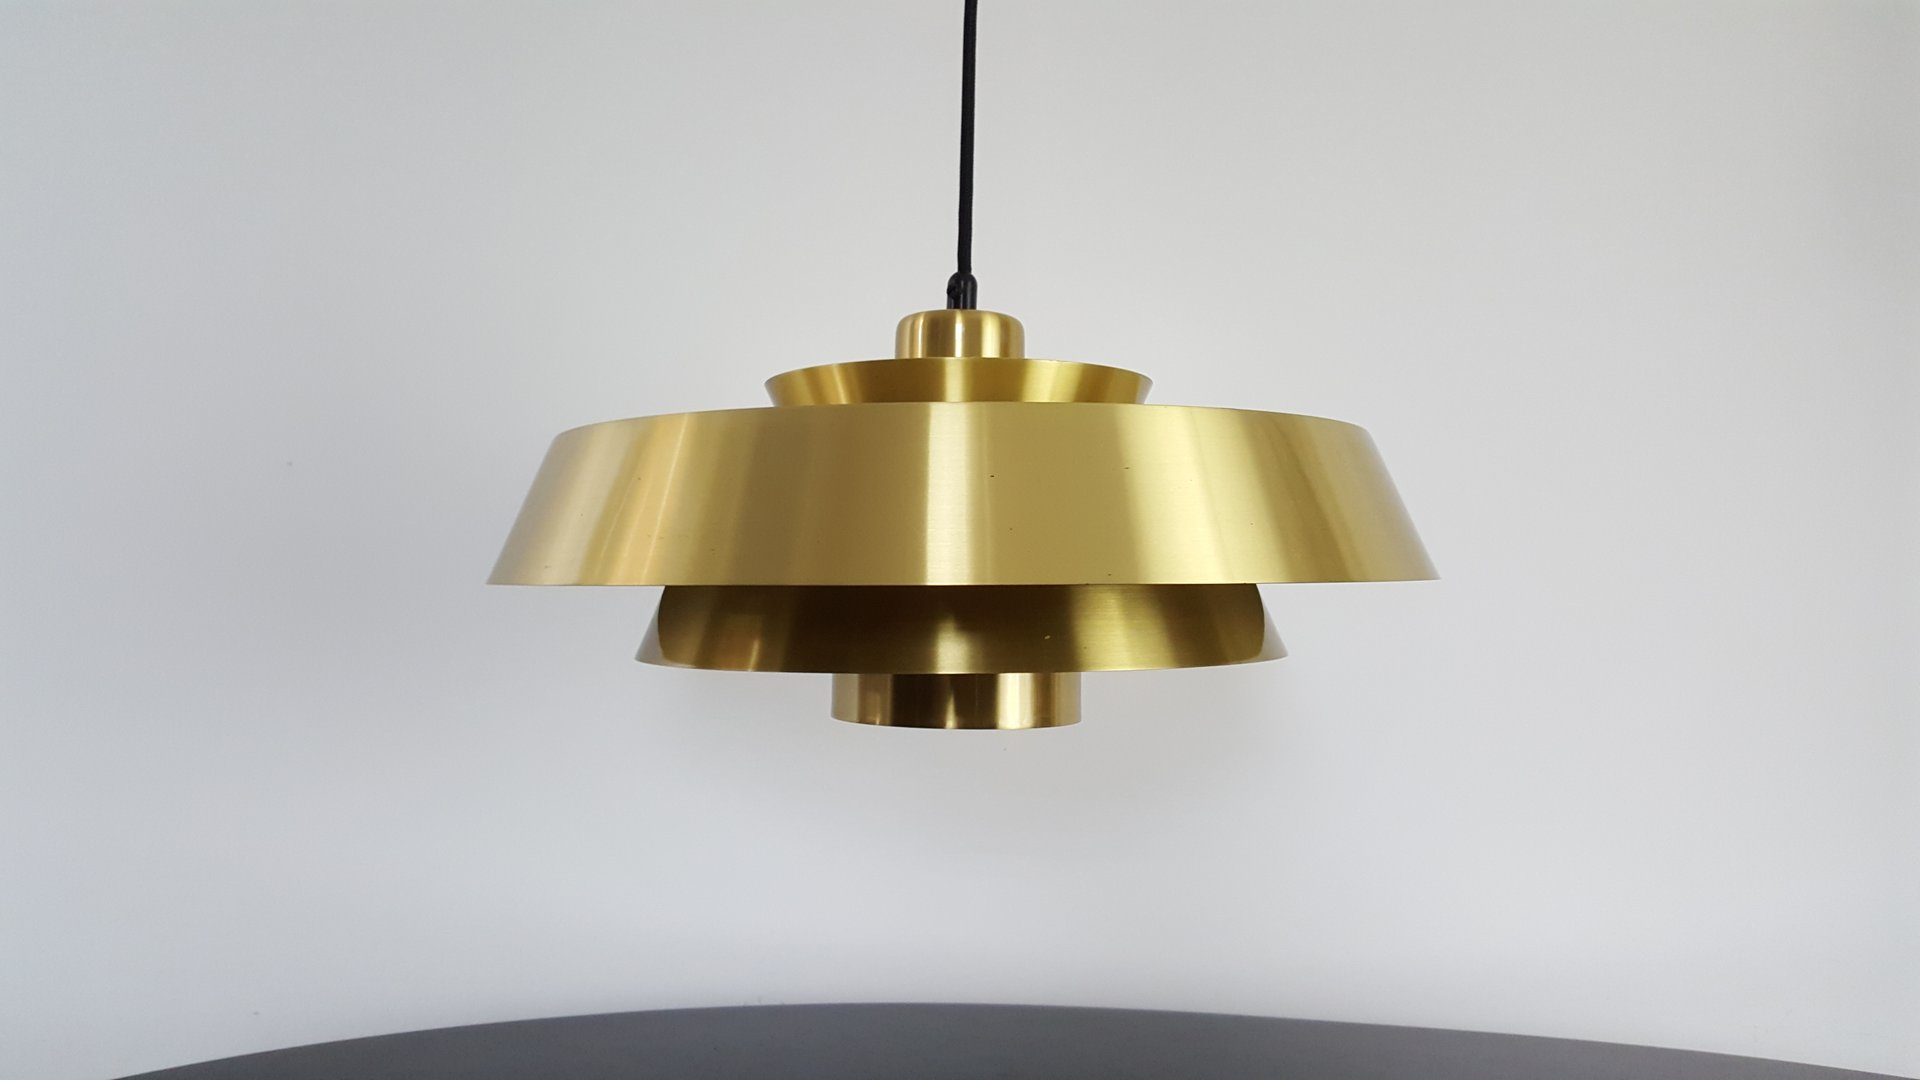 brass pendant lighting. plain lighting nova brass pendant light by jo hammerborg for fog u0026 mrup denmark 1960s inside lighting p